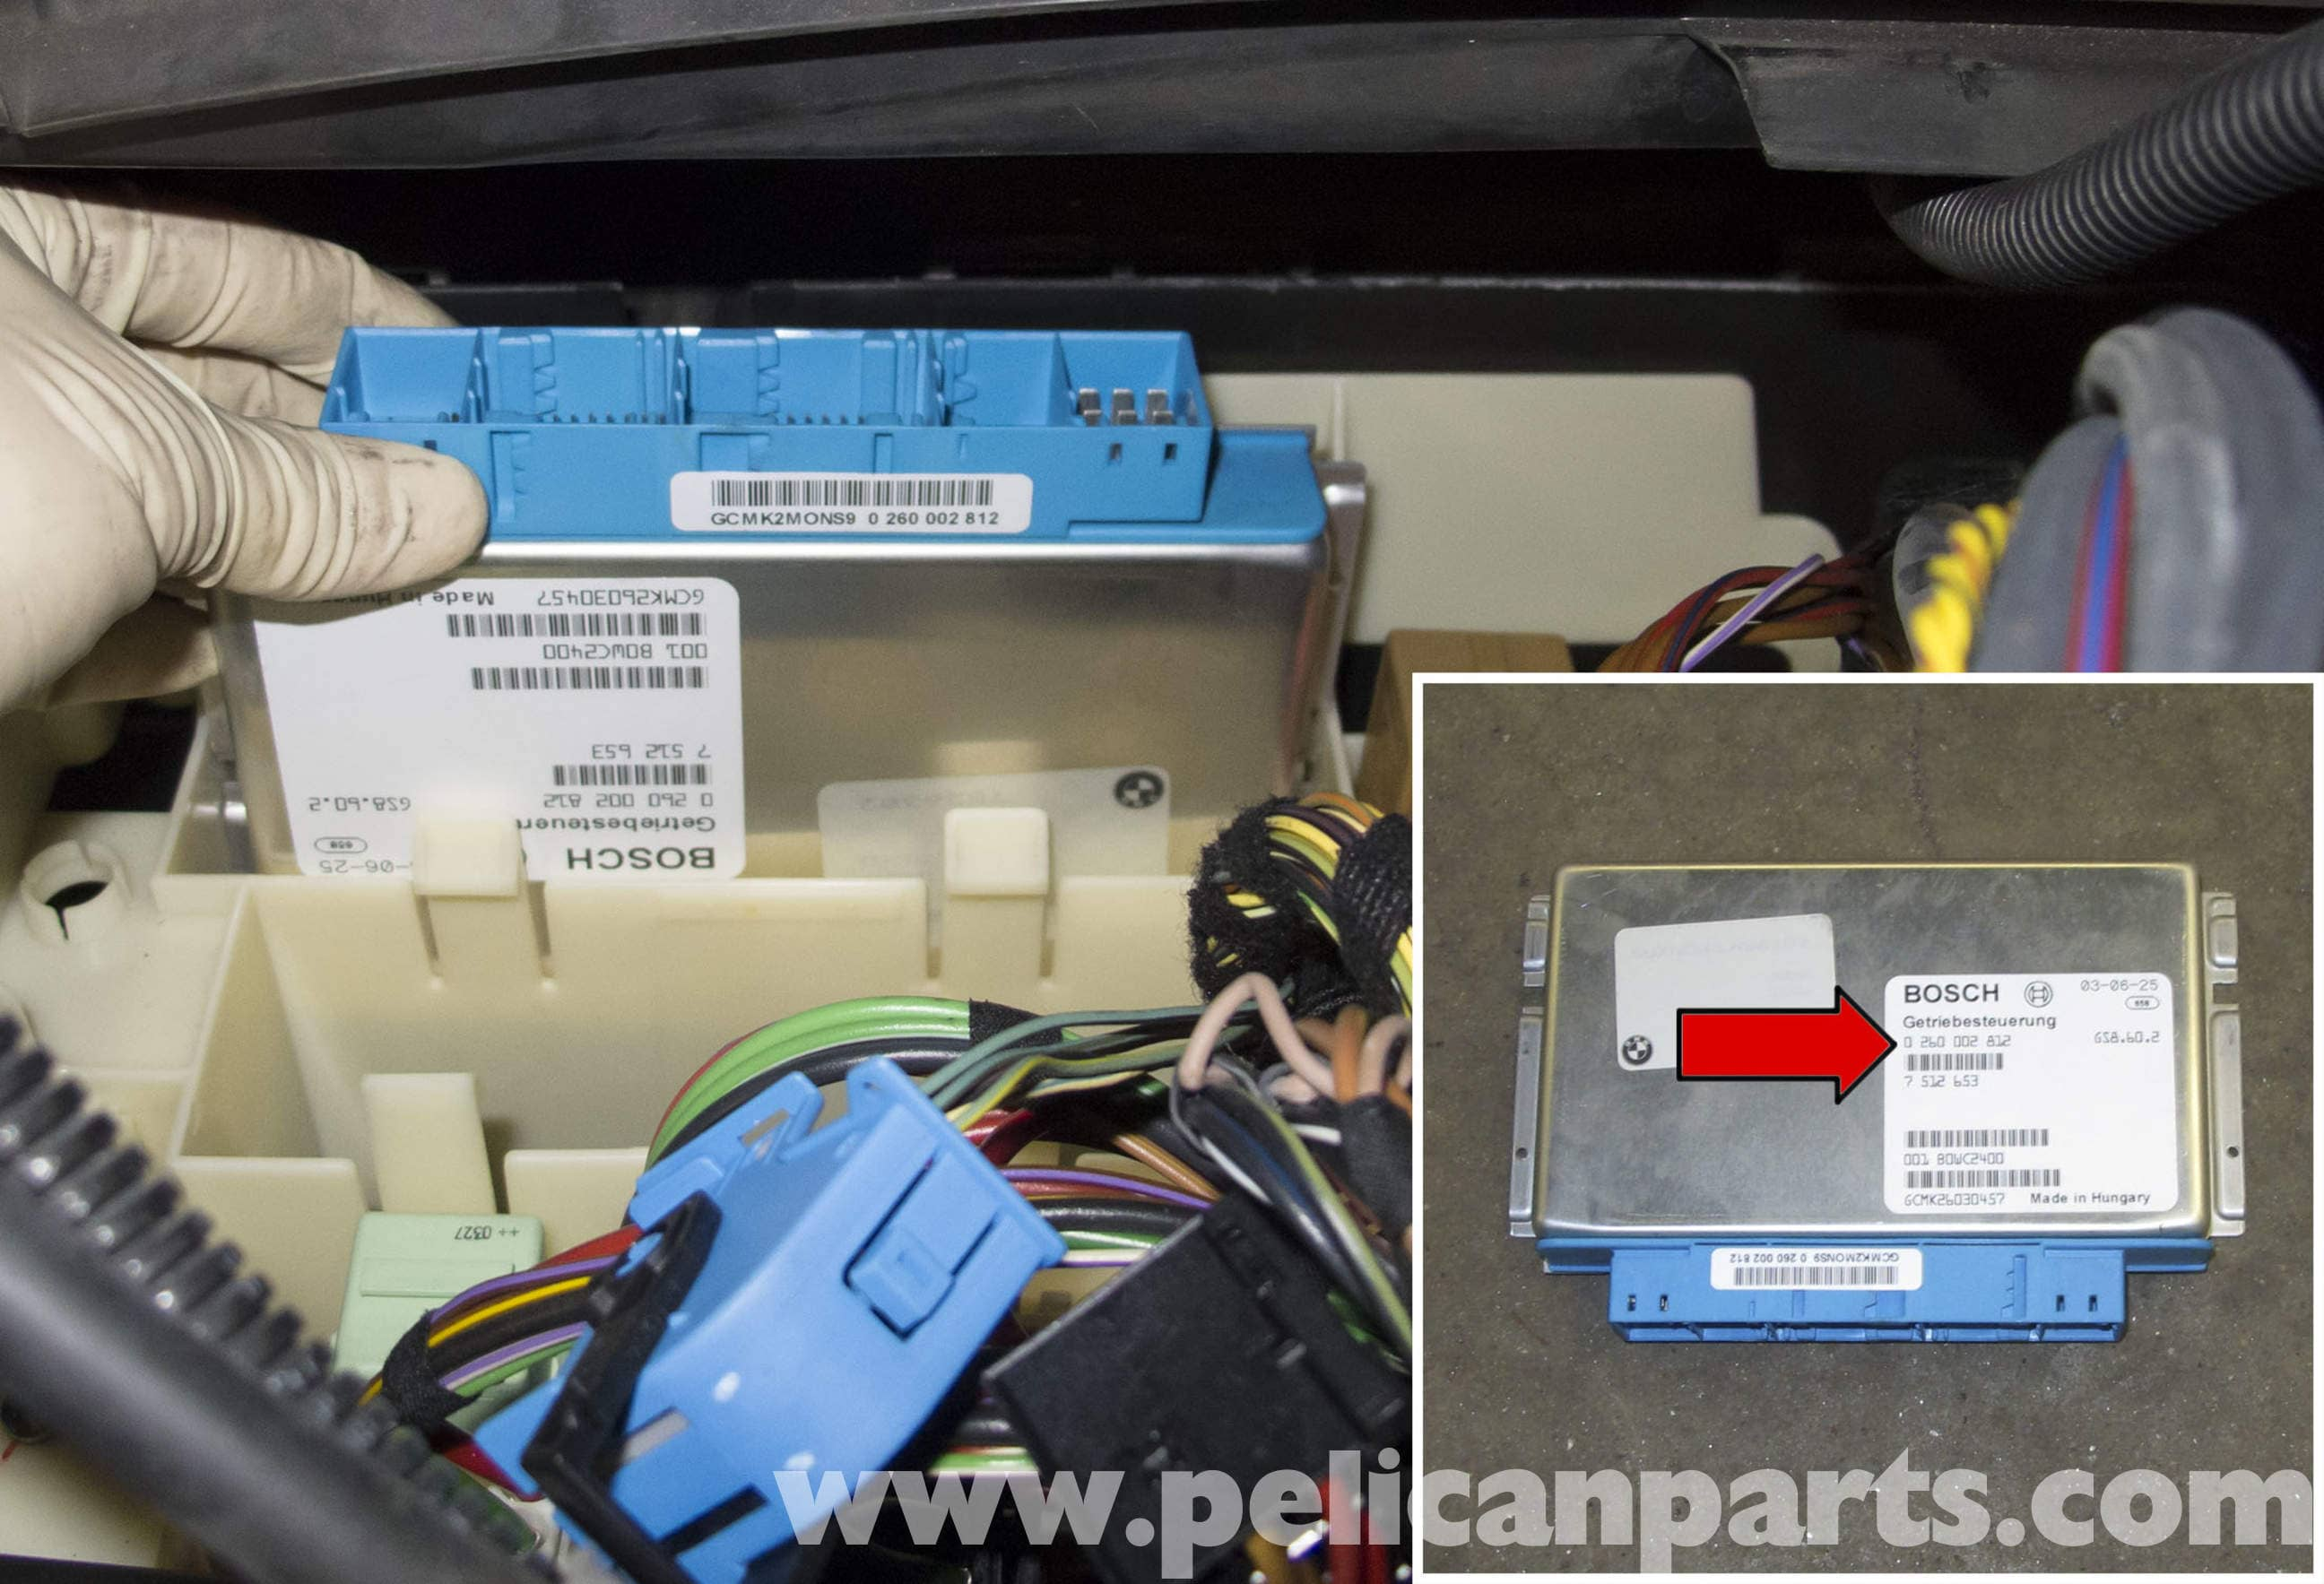 pic13 bmw x5 dme and tcm replacement (e53 2000 2006) pelican parts BMW X5 Fuse Panel Diagram at bakdesigns.co